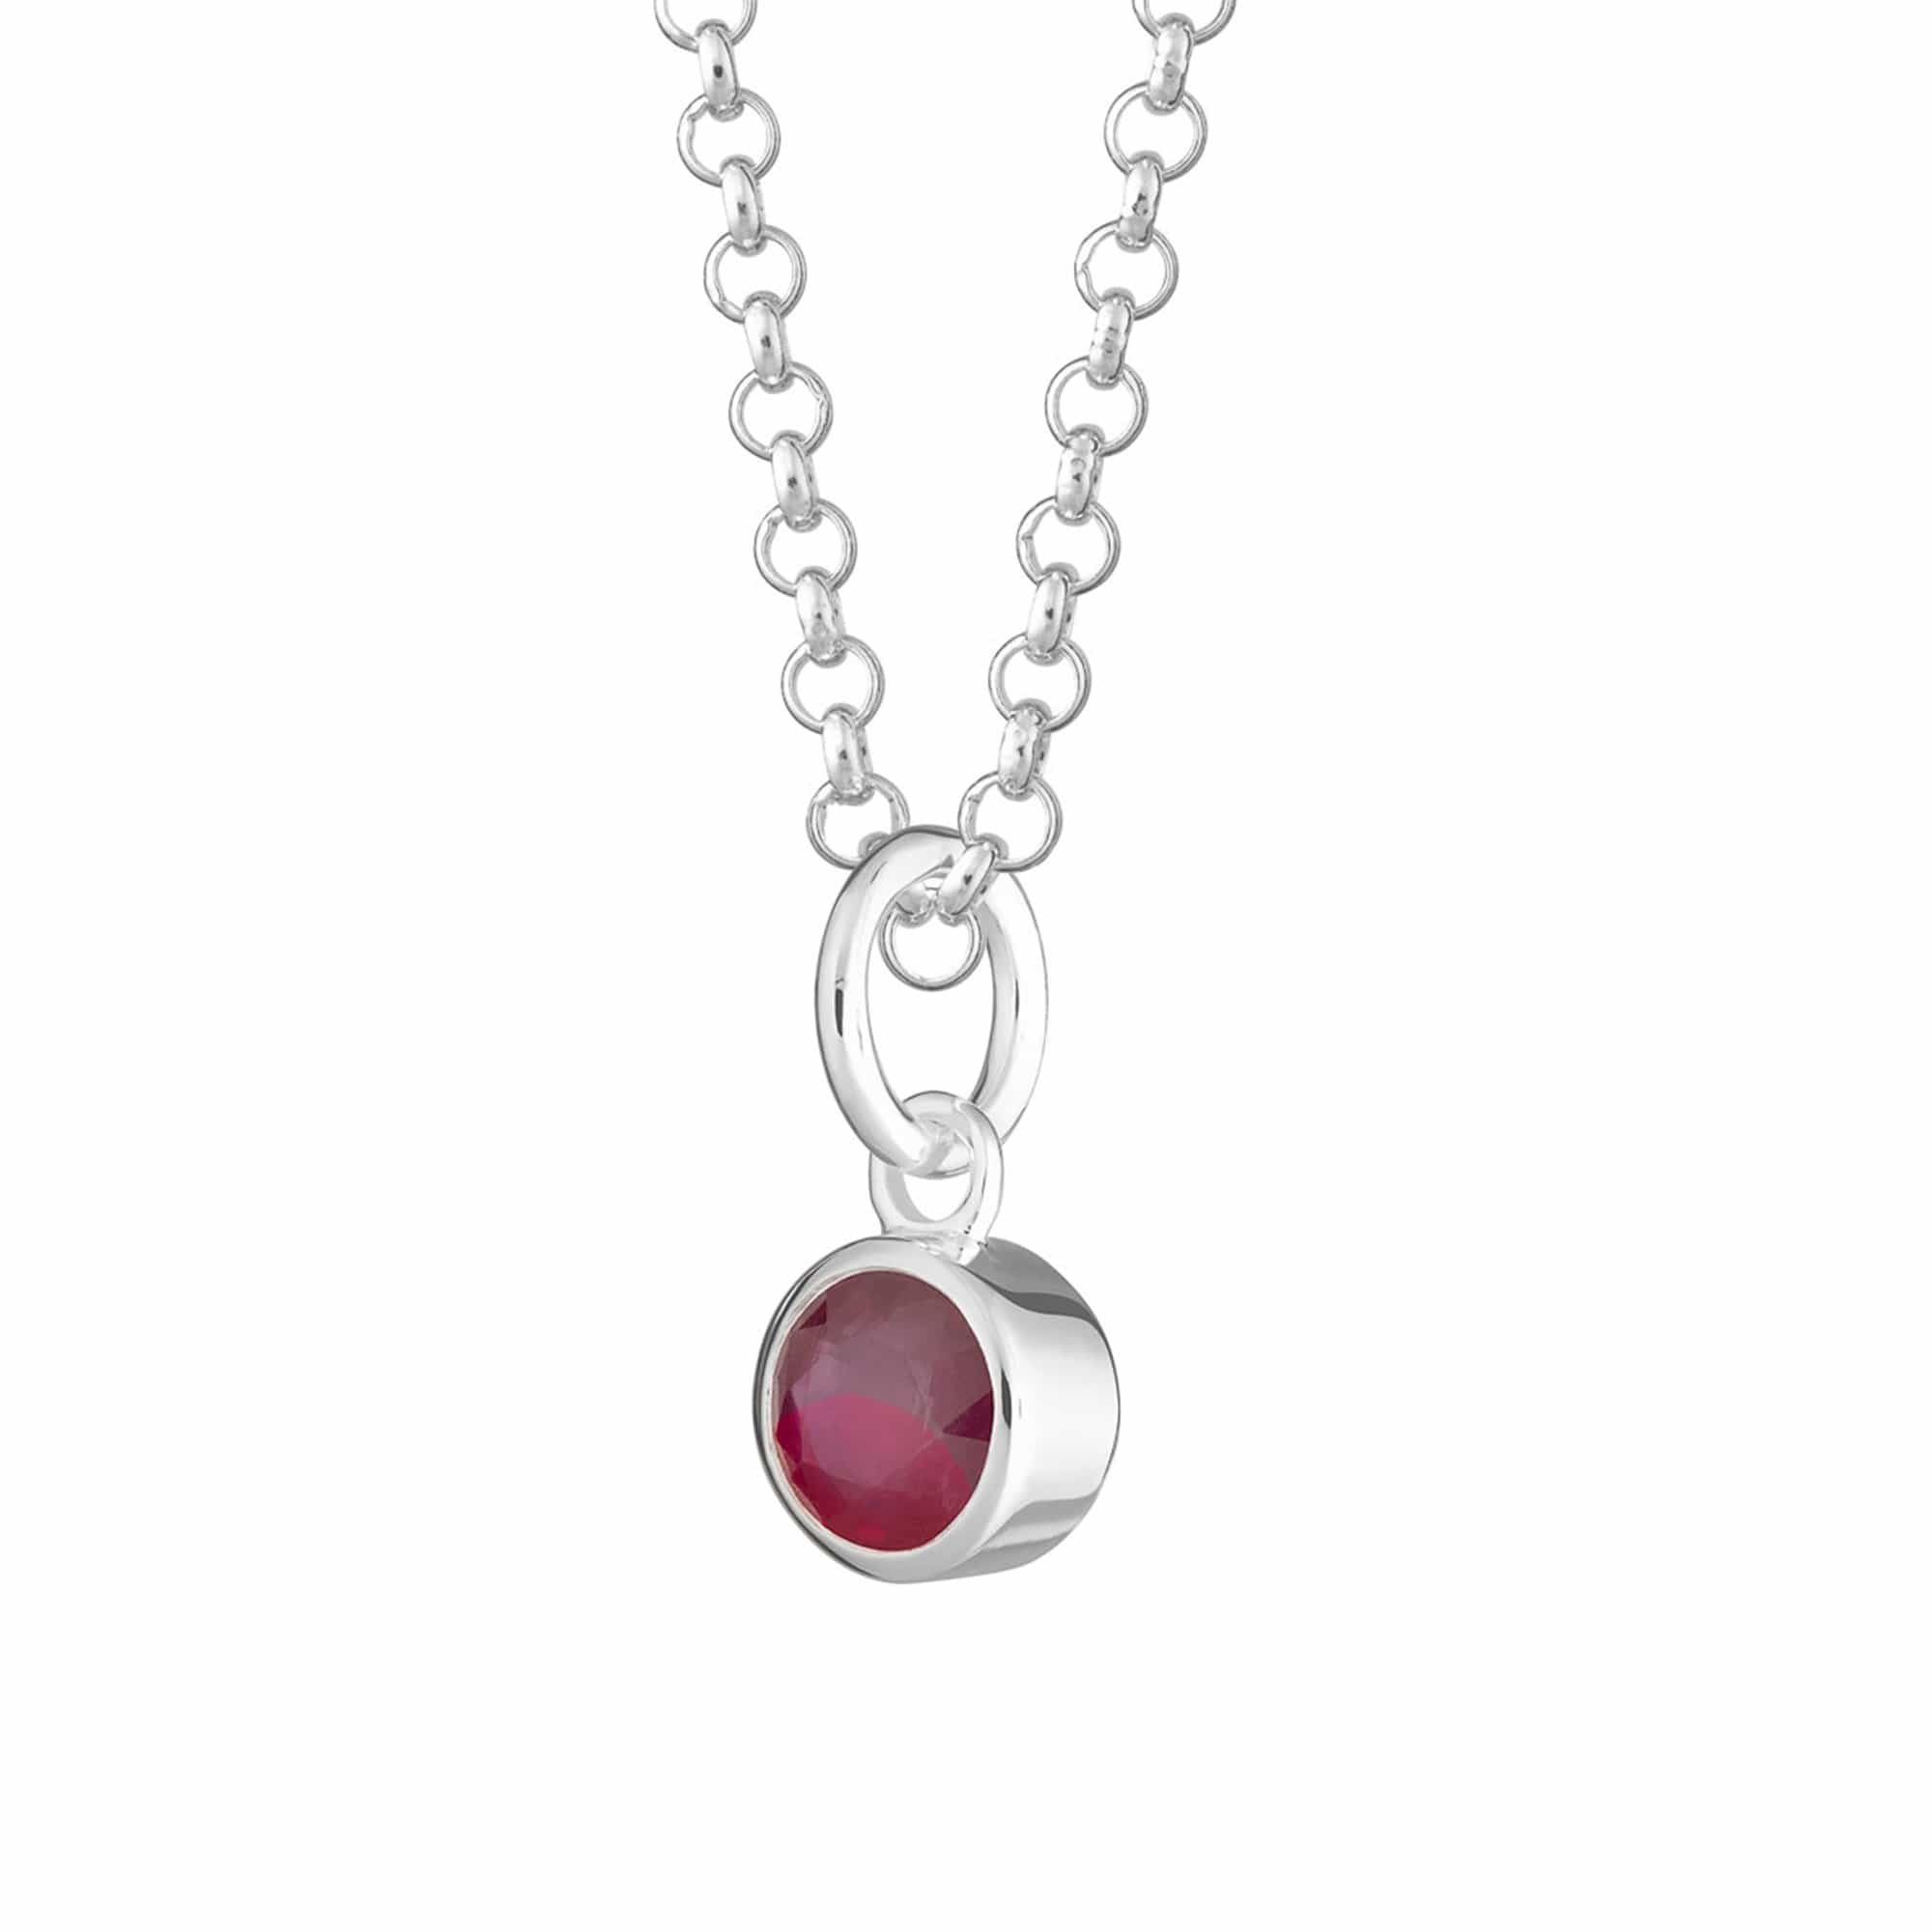 Personalised July Birthstone Necklace (Ruby)